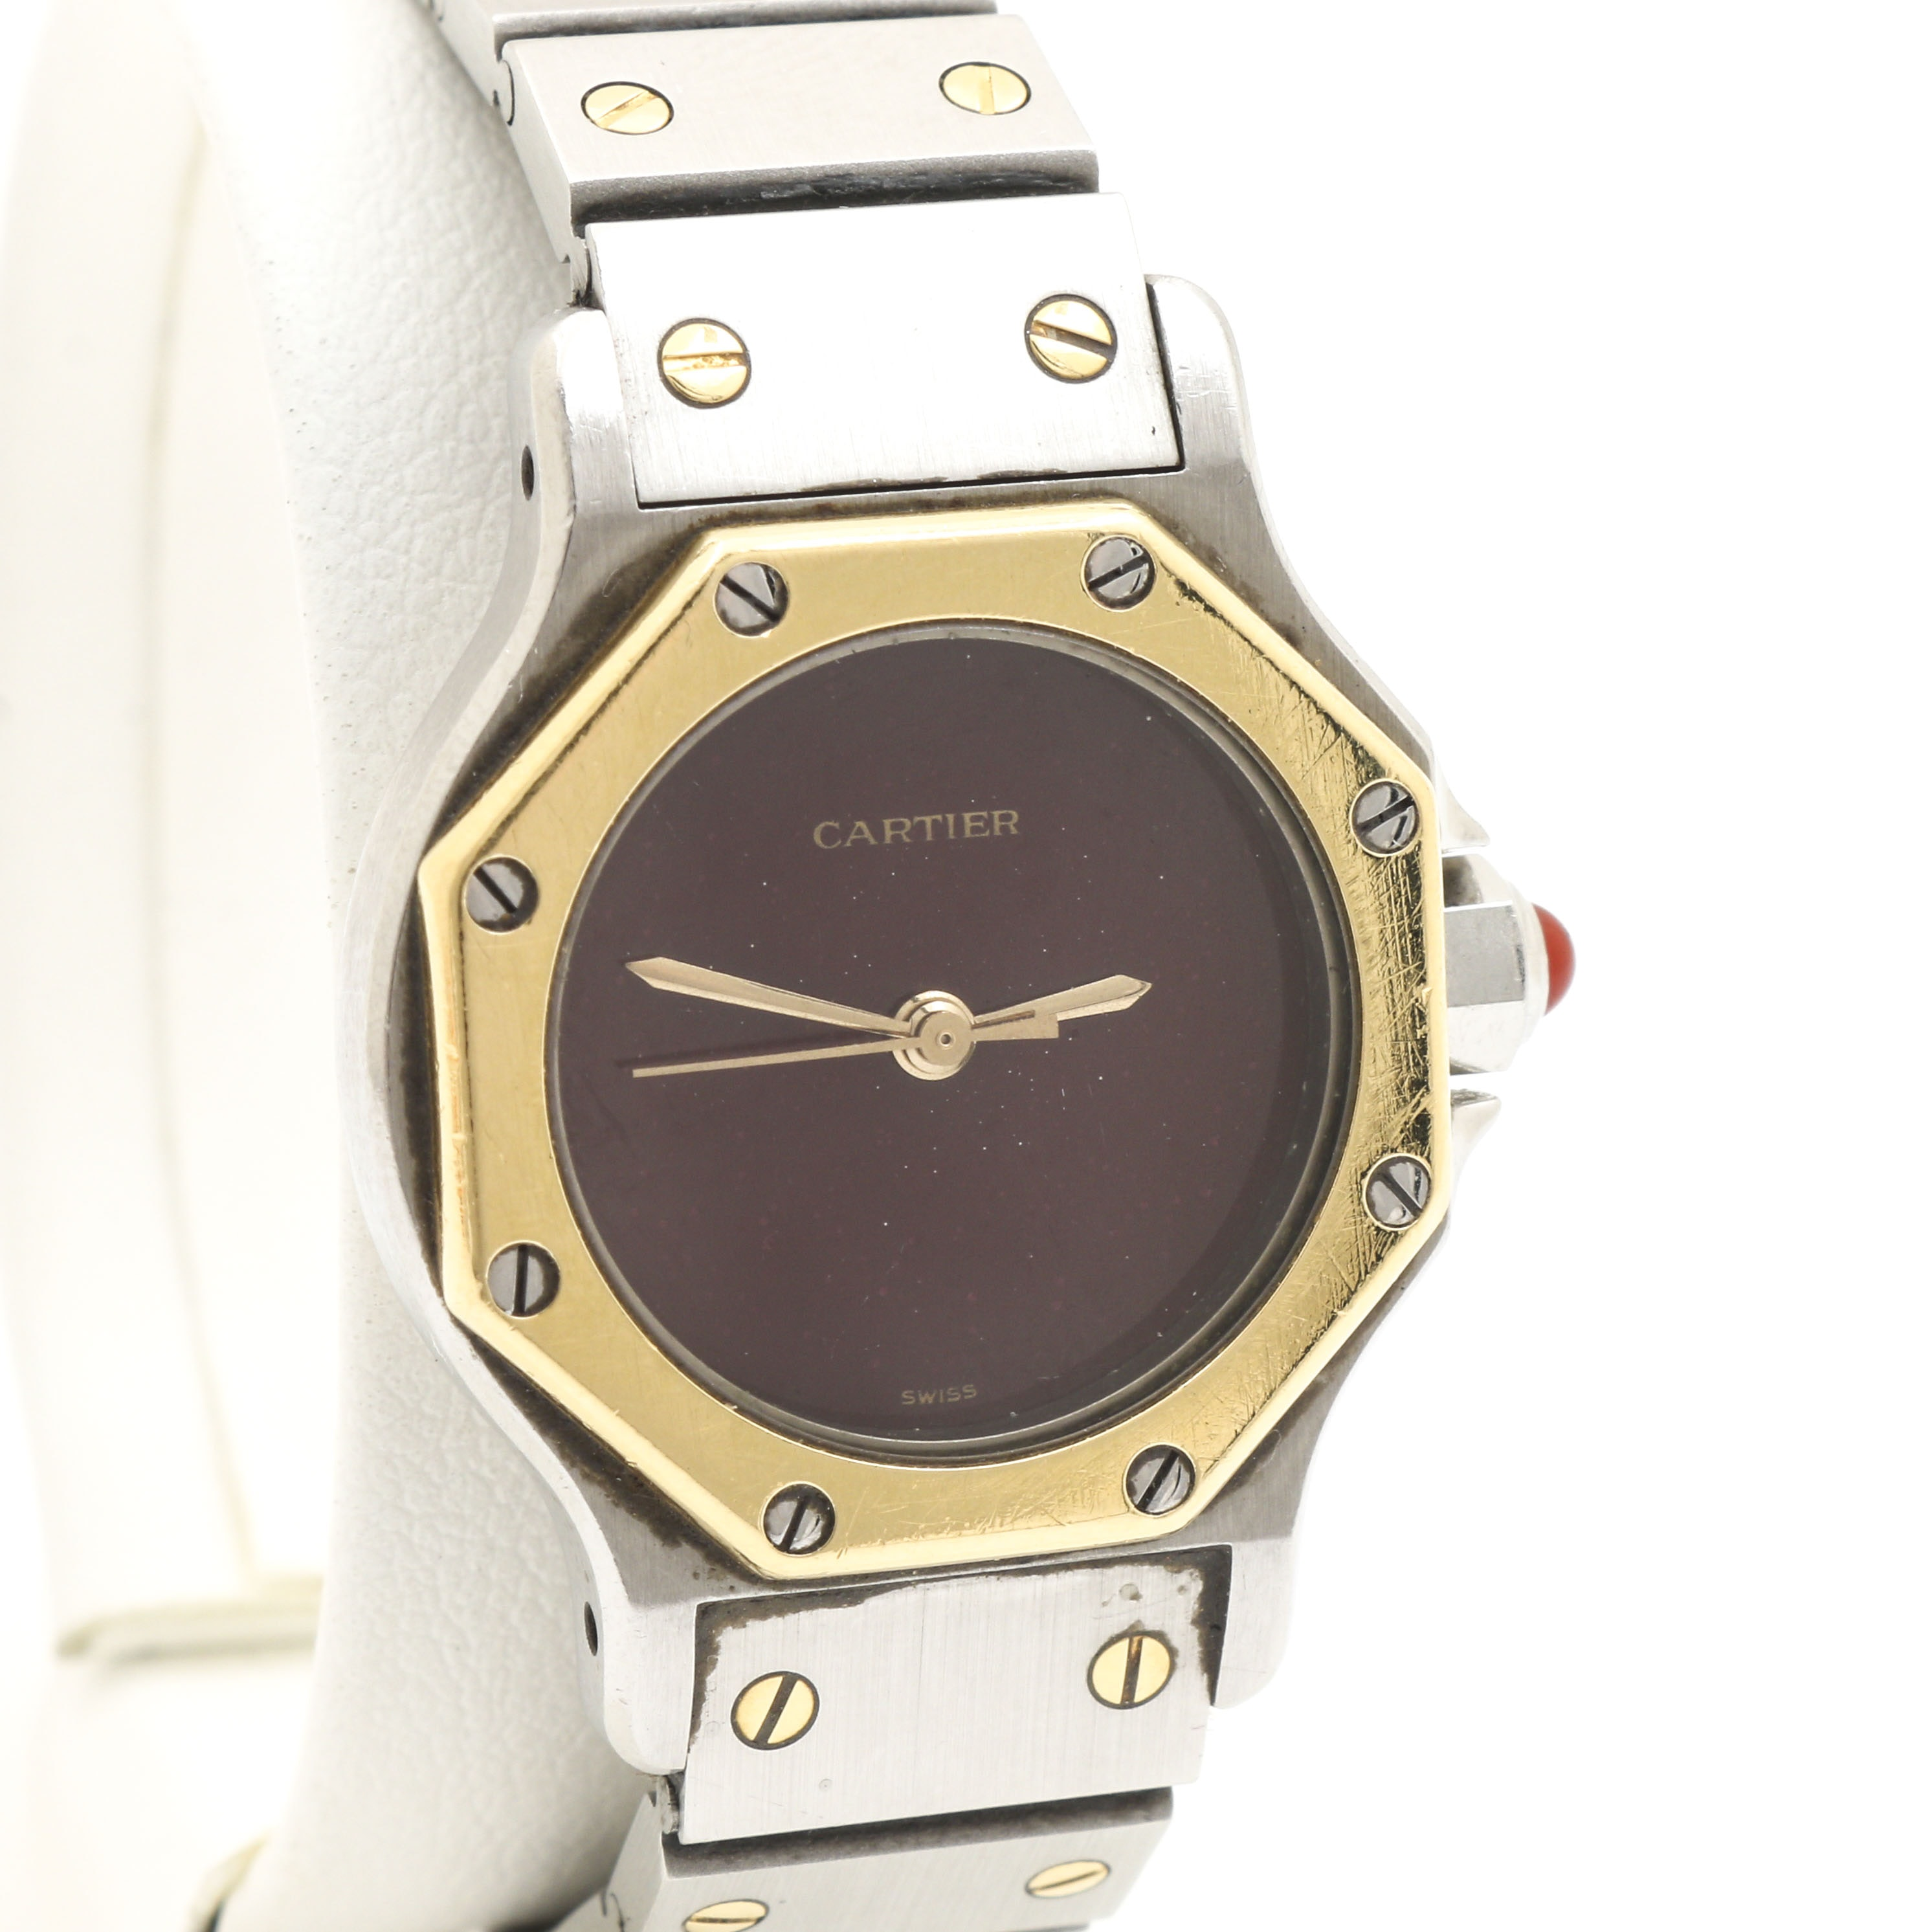 Cartier 18K Yellow Gold, Stainless Steel, and Carnelian Crown Wristwatch